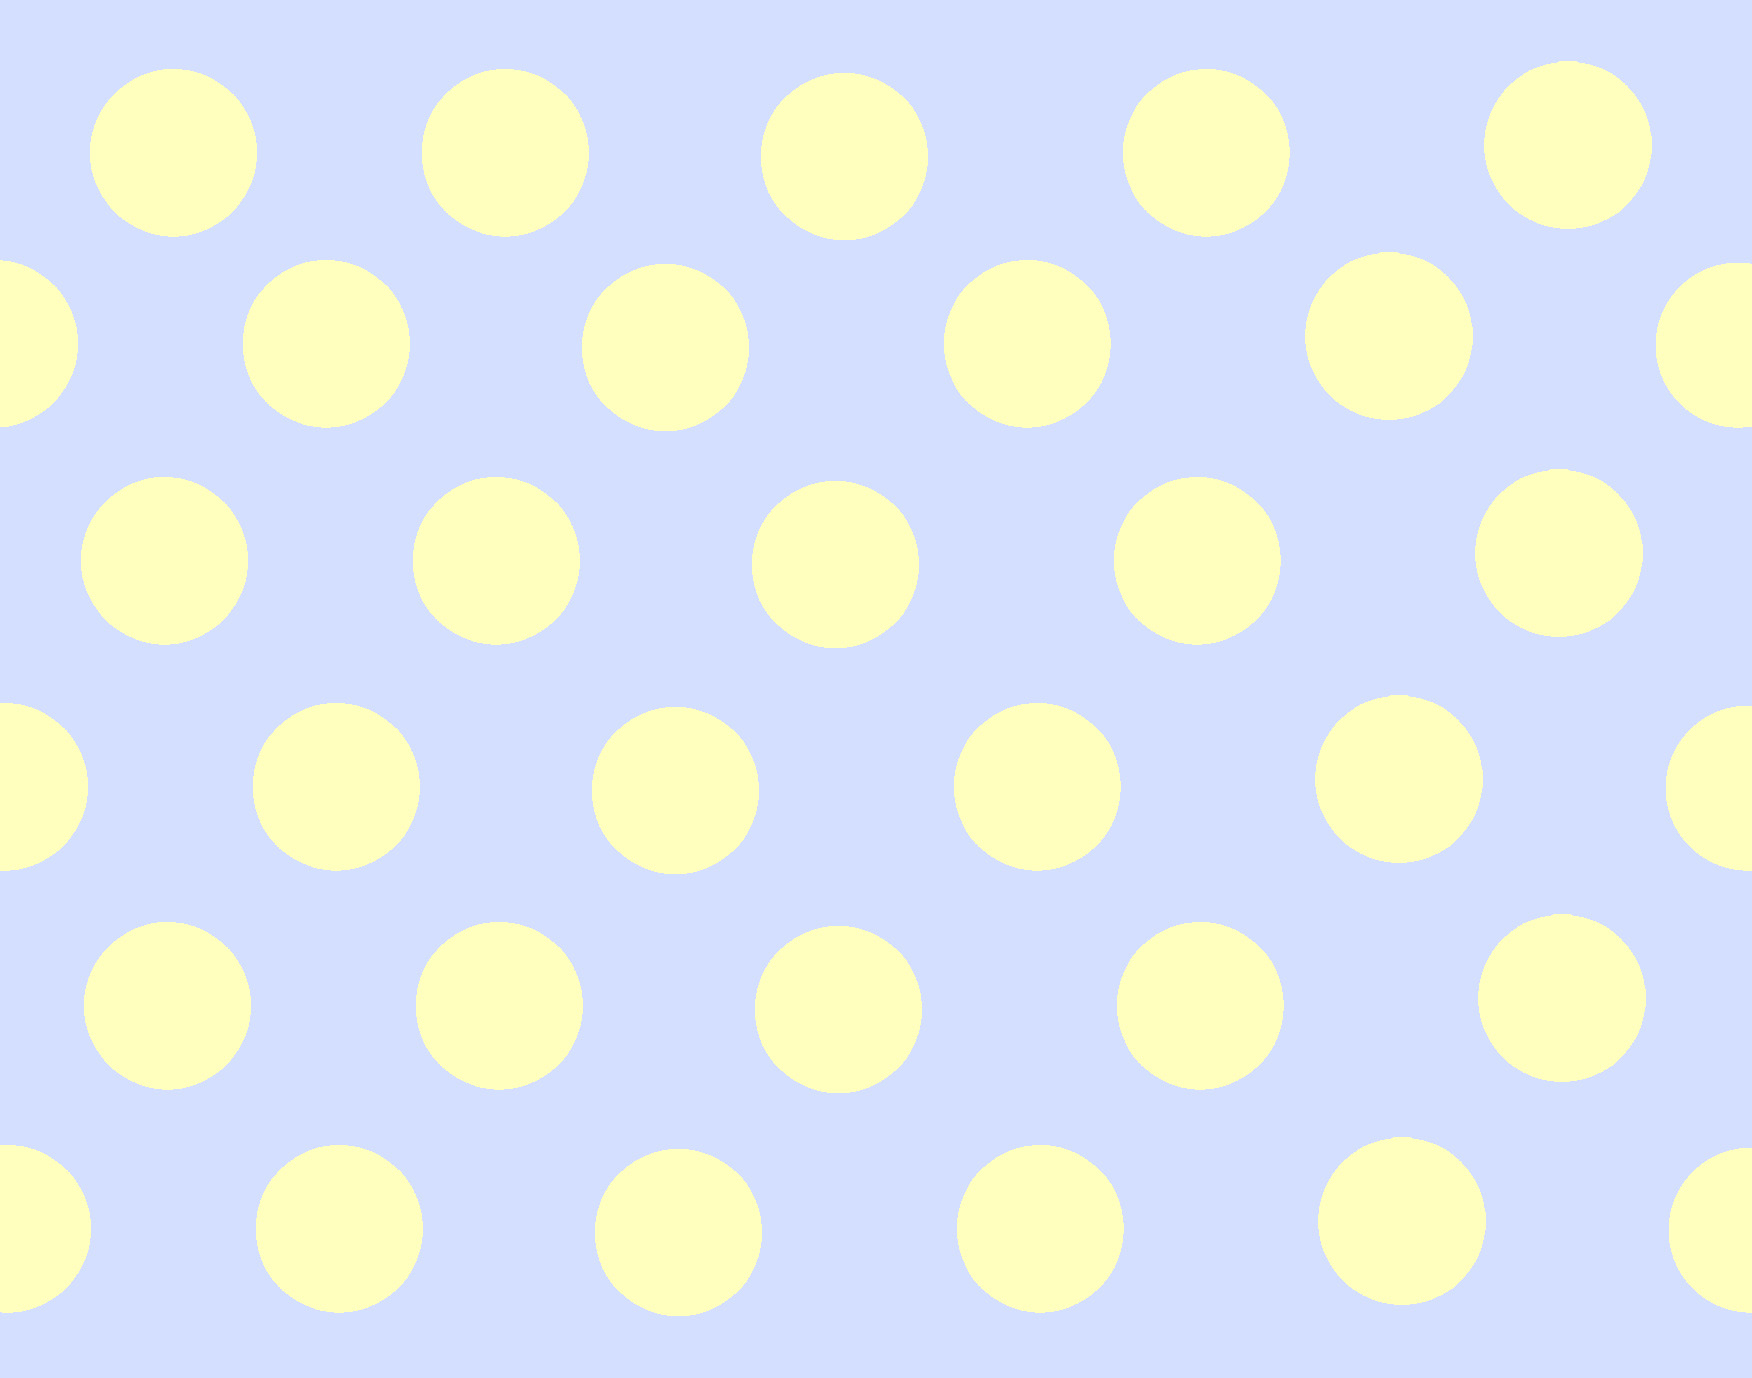 Light Blue And Yellow Wallpaper: Yellow Polka Dot Wallpaper